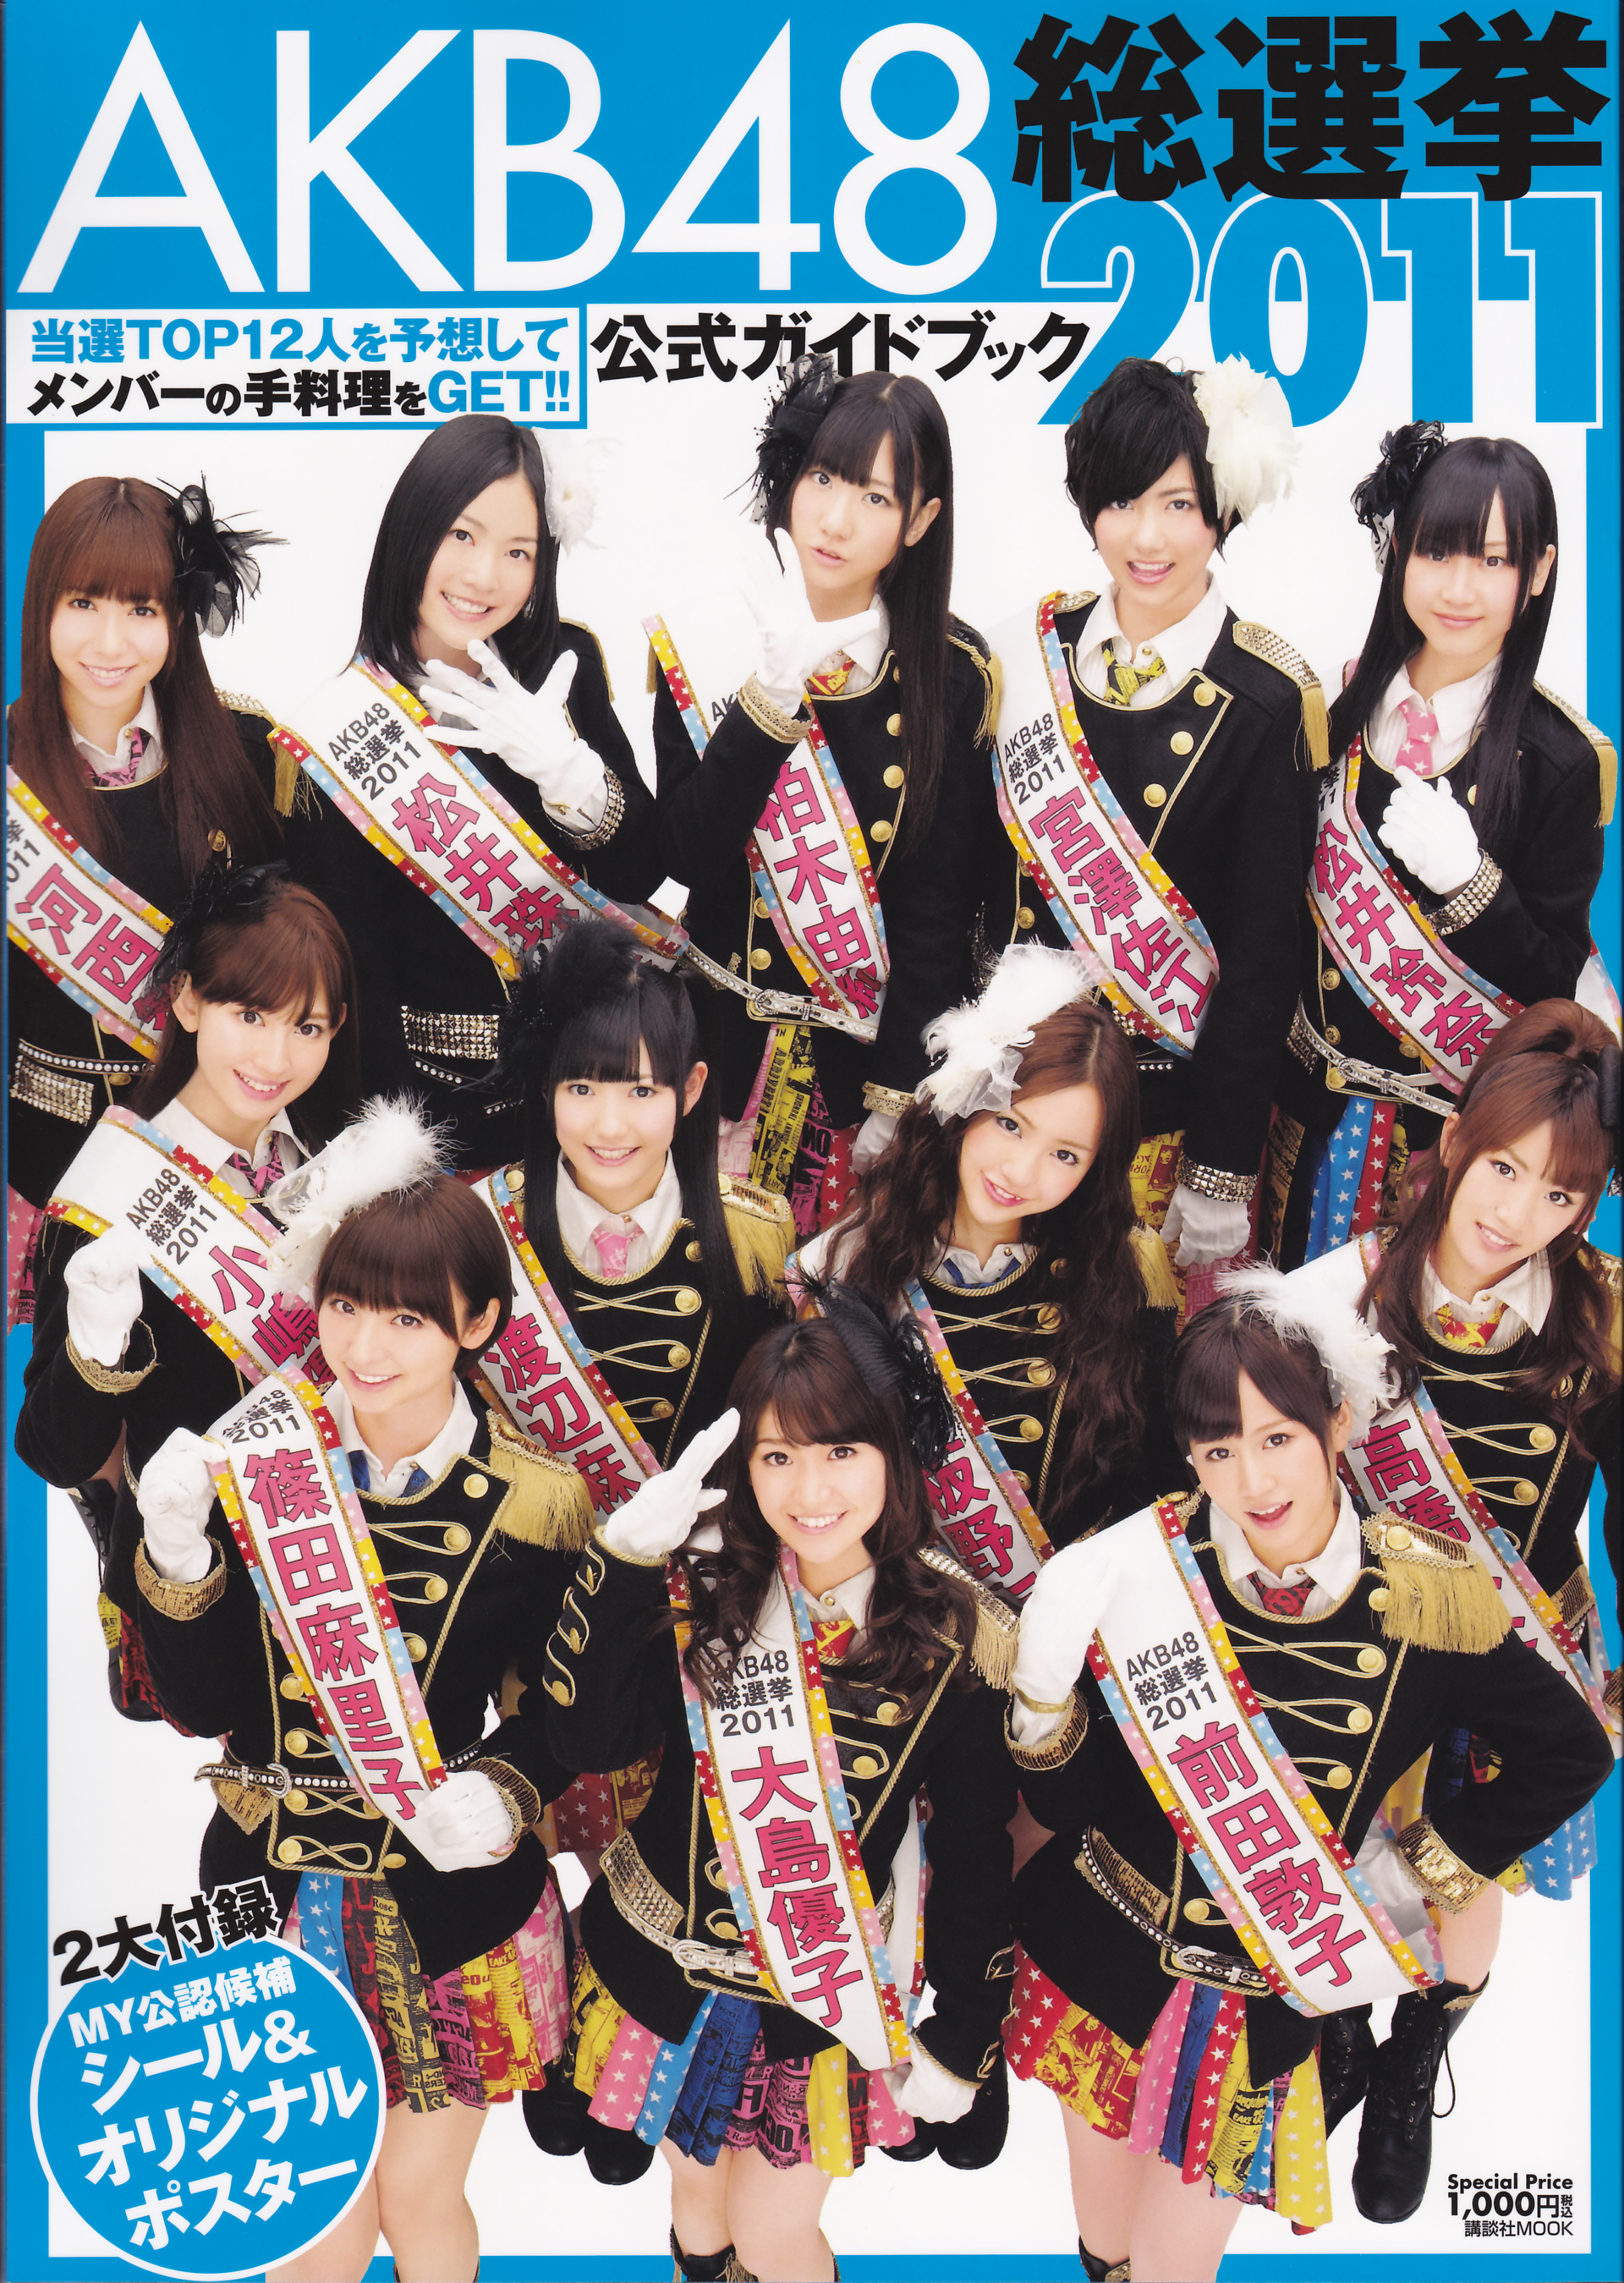 [WU] AKB48 Sousenkyo 2011 Official Guide Book [158P/192MB]Real Street Angels